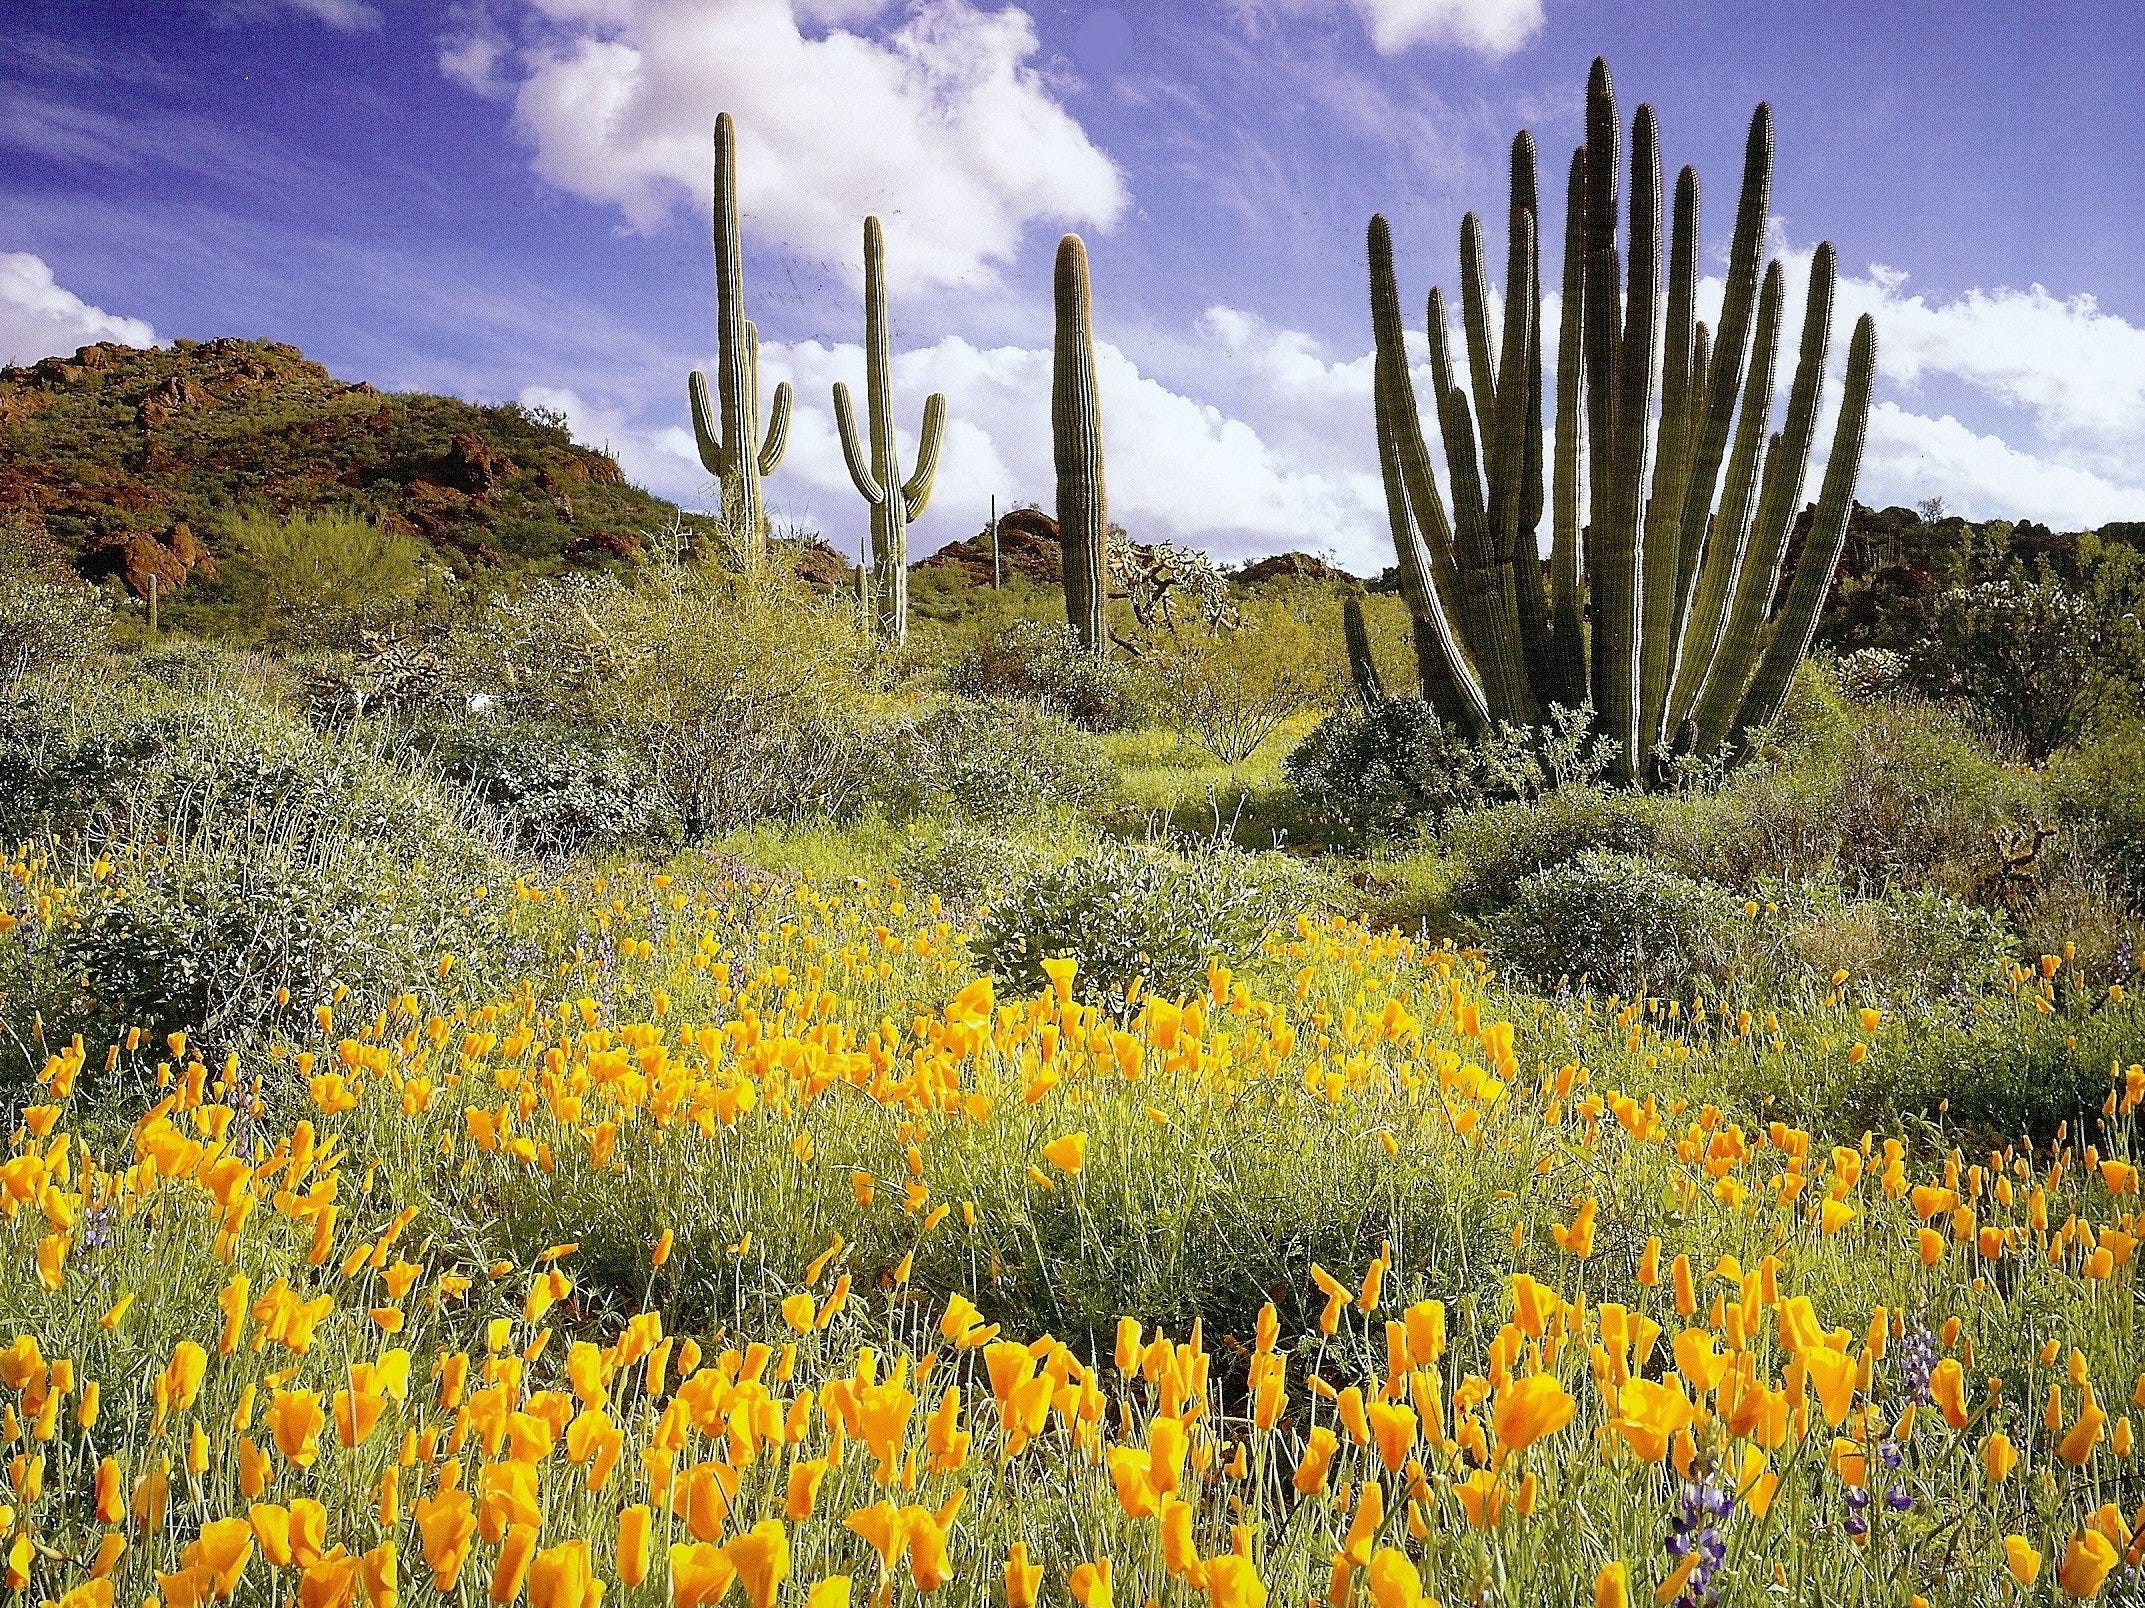 The desert in bloom